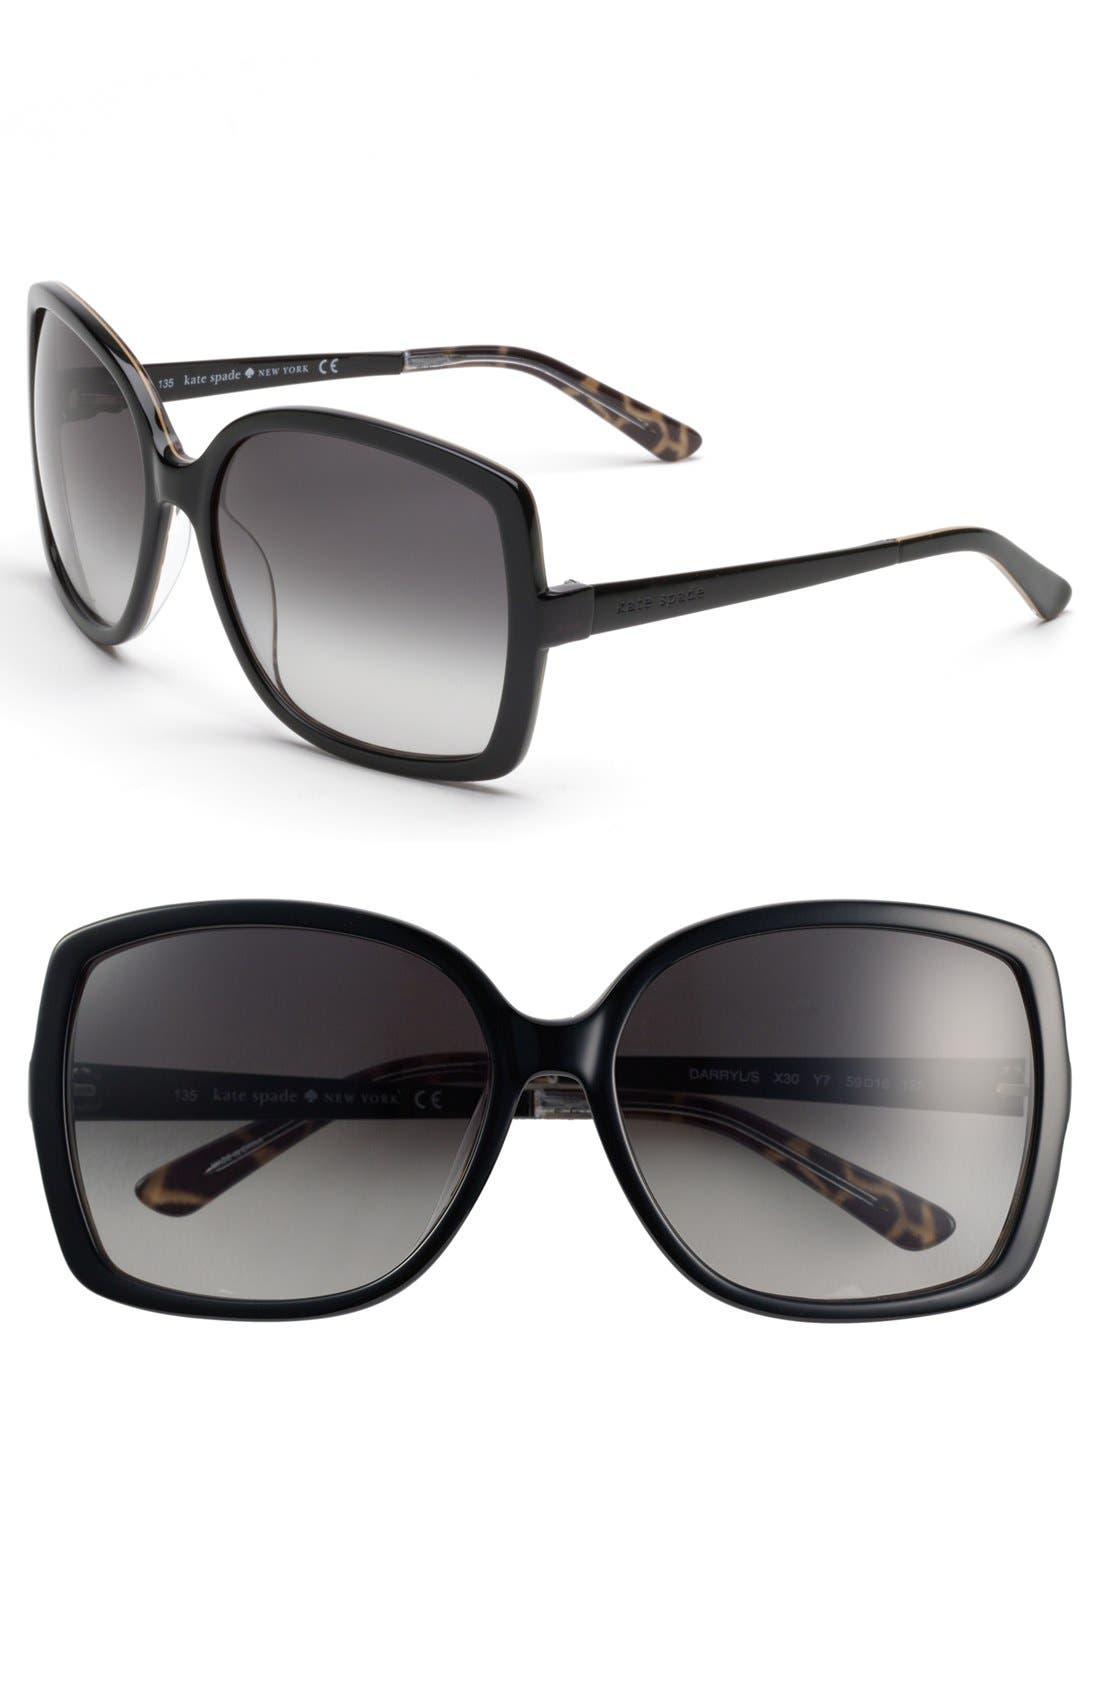 Main Image - kate spade new york 'darryl' 59mm oversized sunglasses